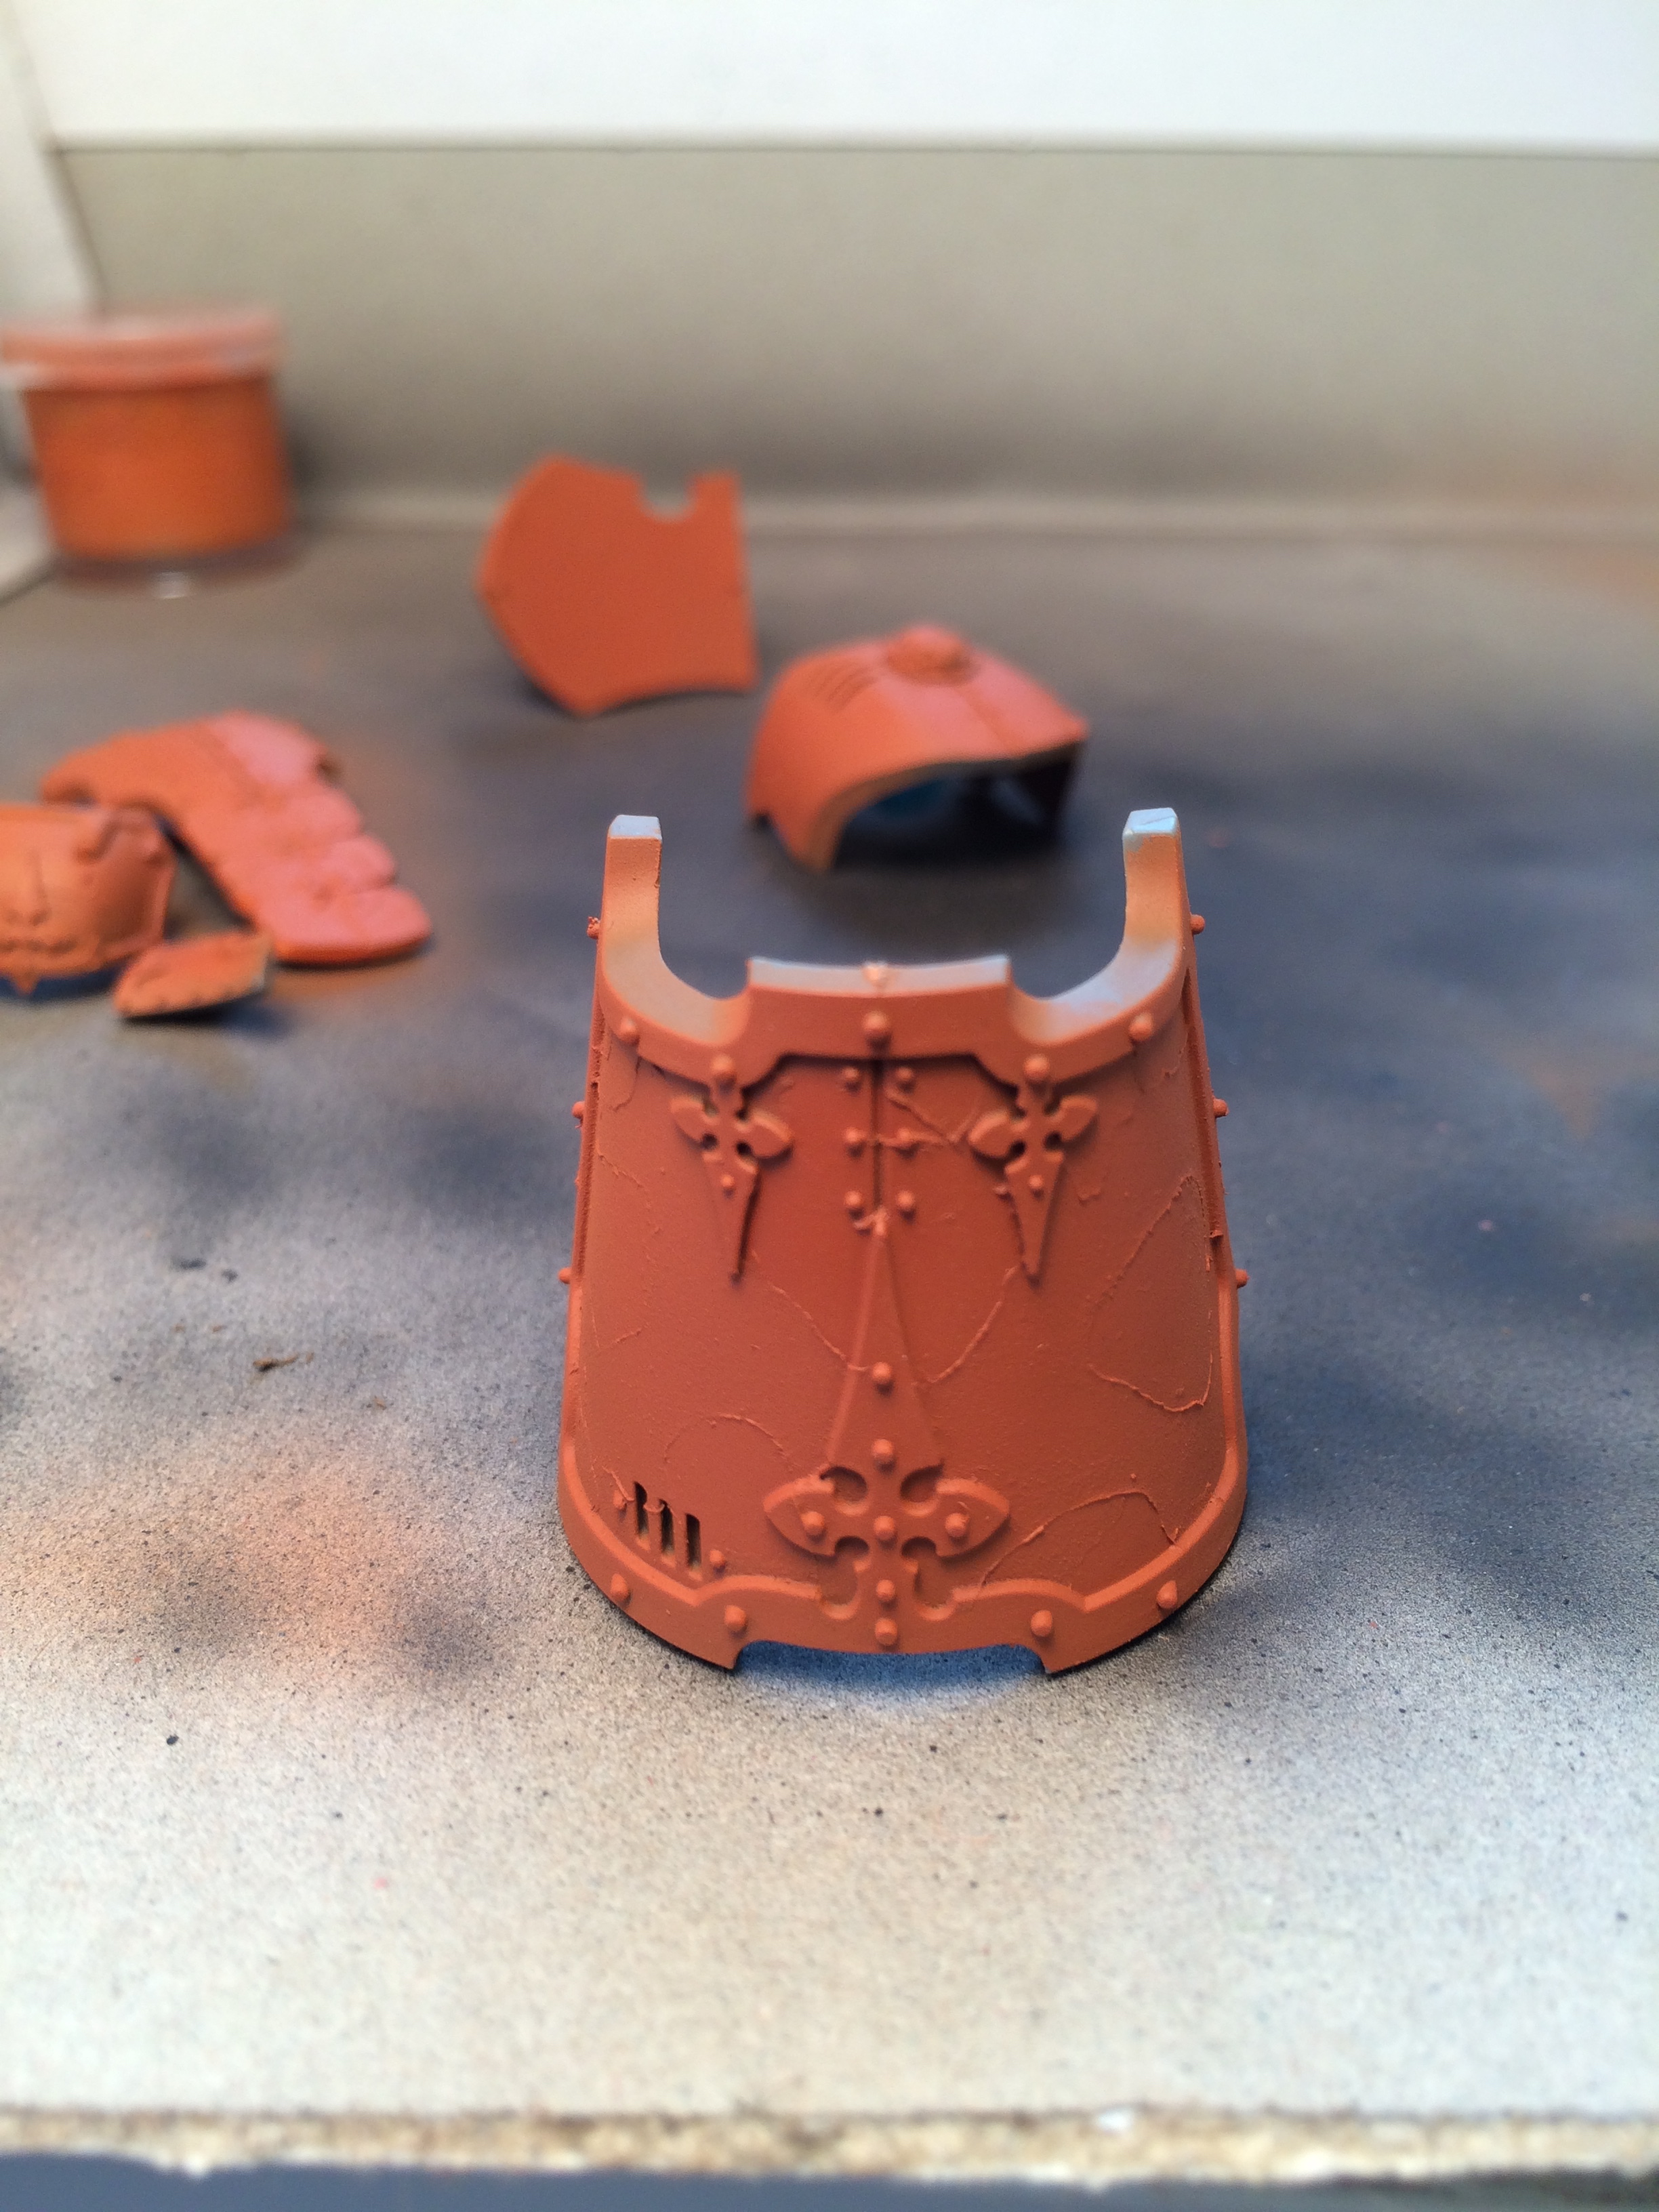 the base rust color